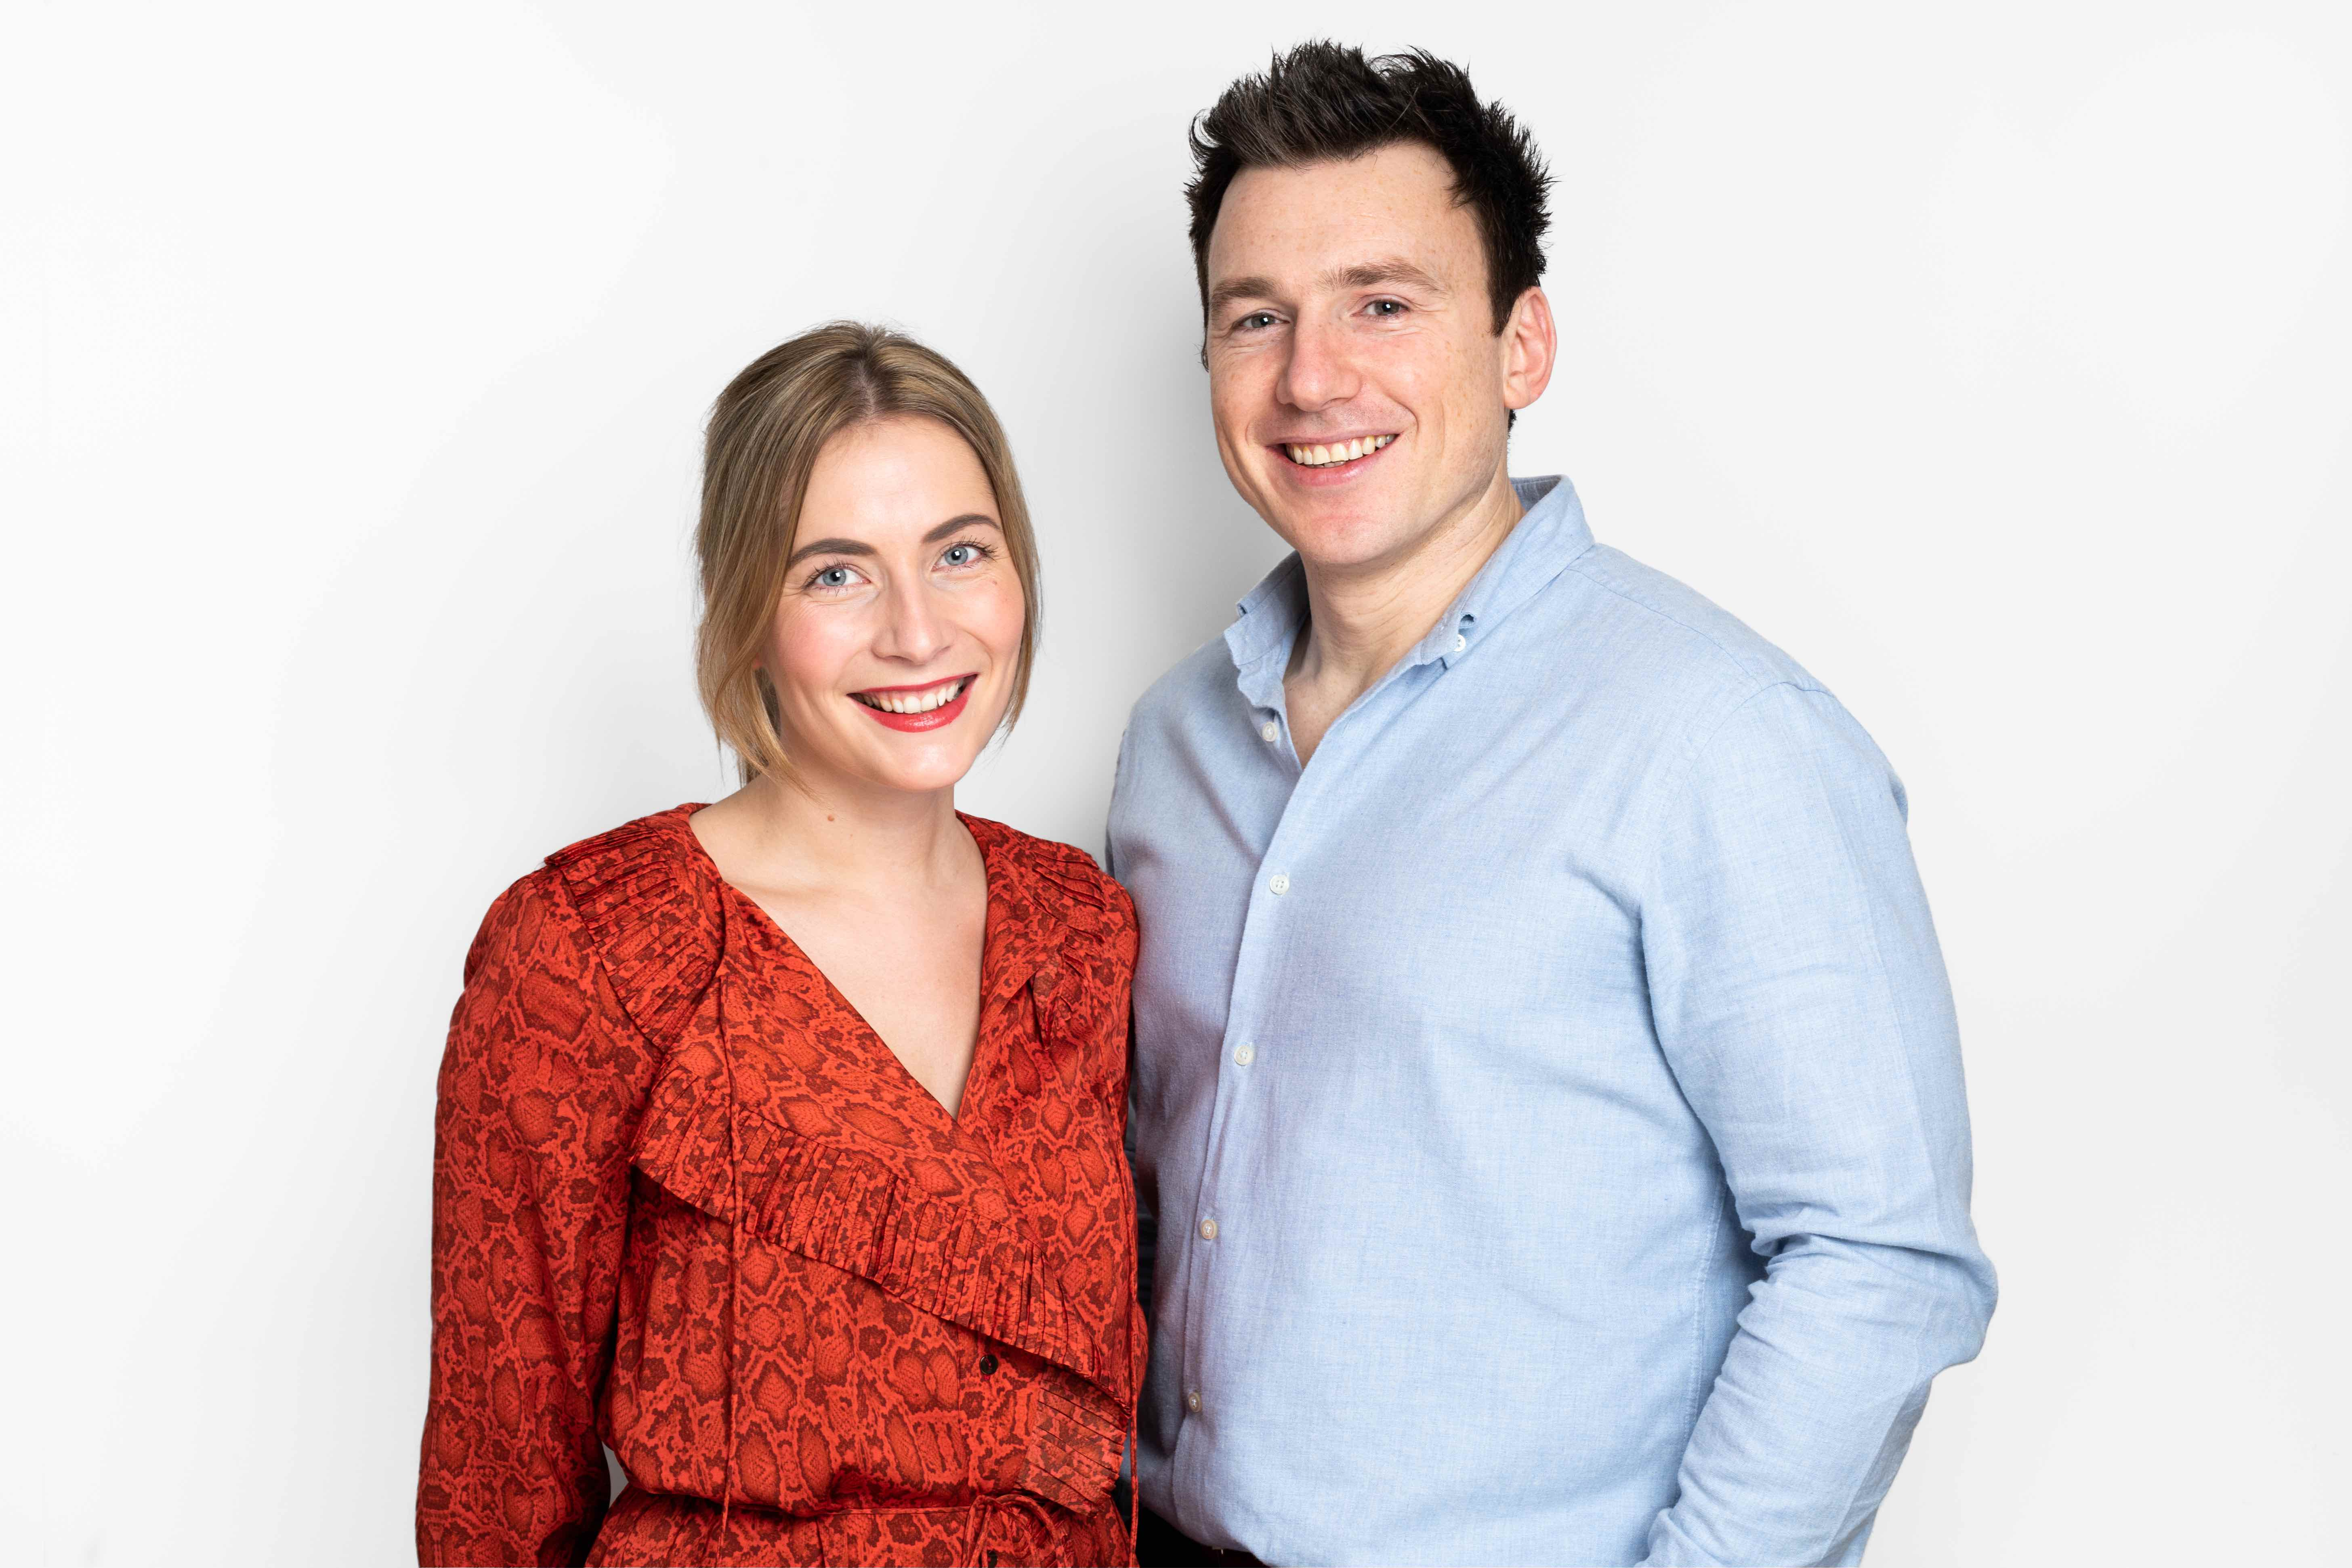 The Inkey List co-founders Colette Laxton and Mark Curry